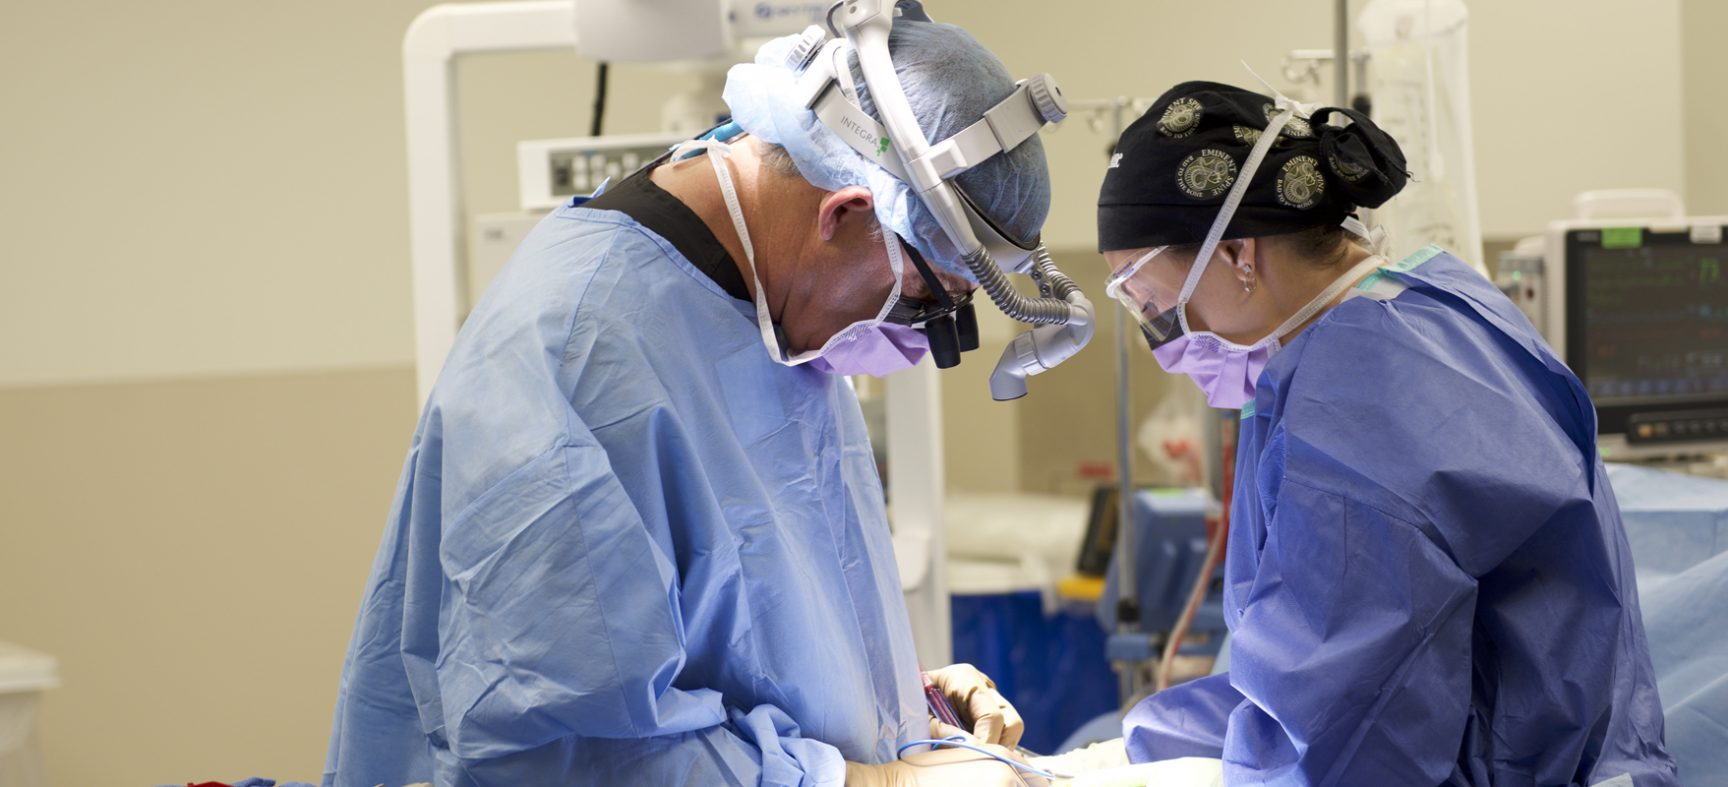 What does it take to be a good Orthopedic spine surgeon?